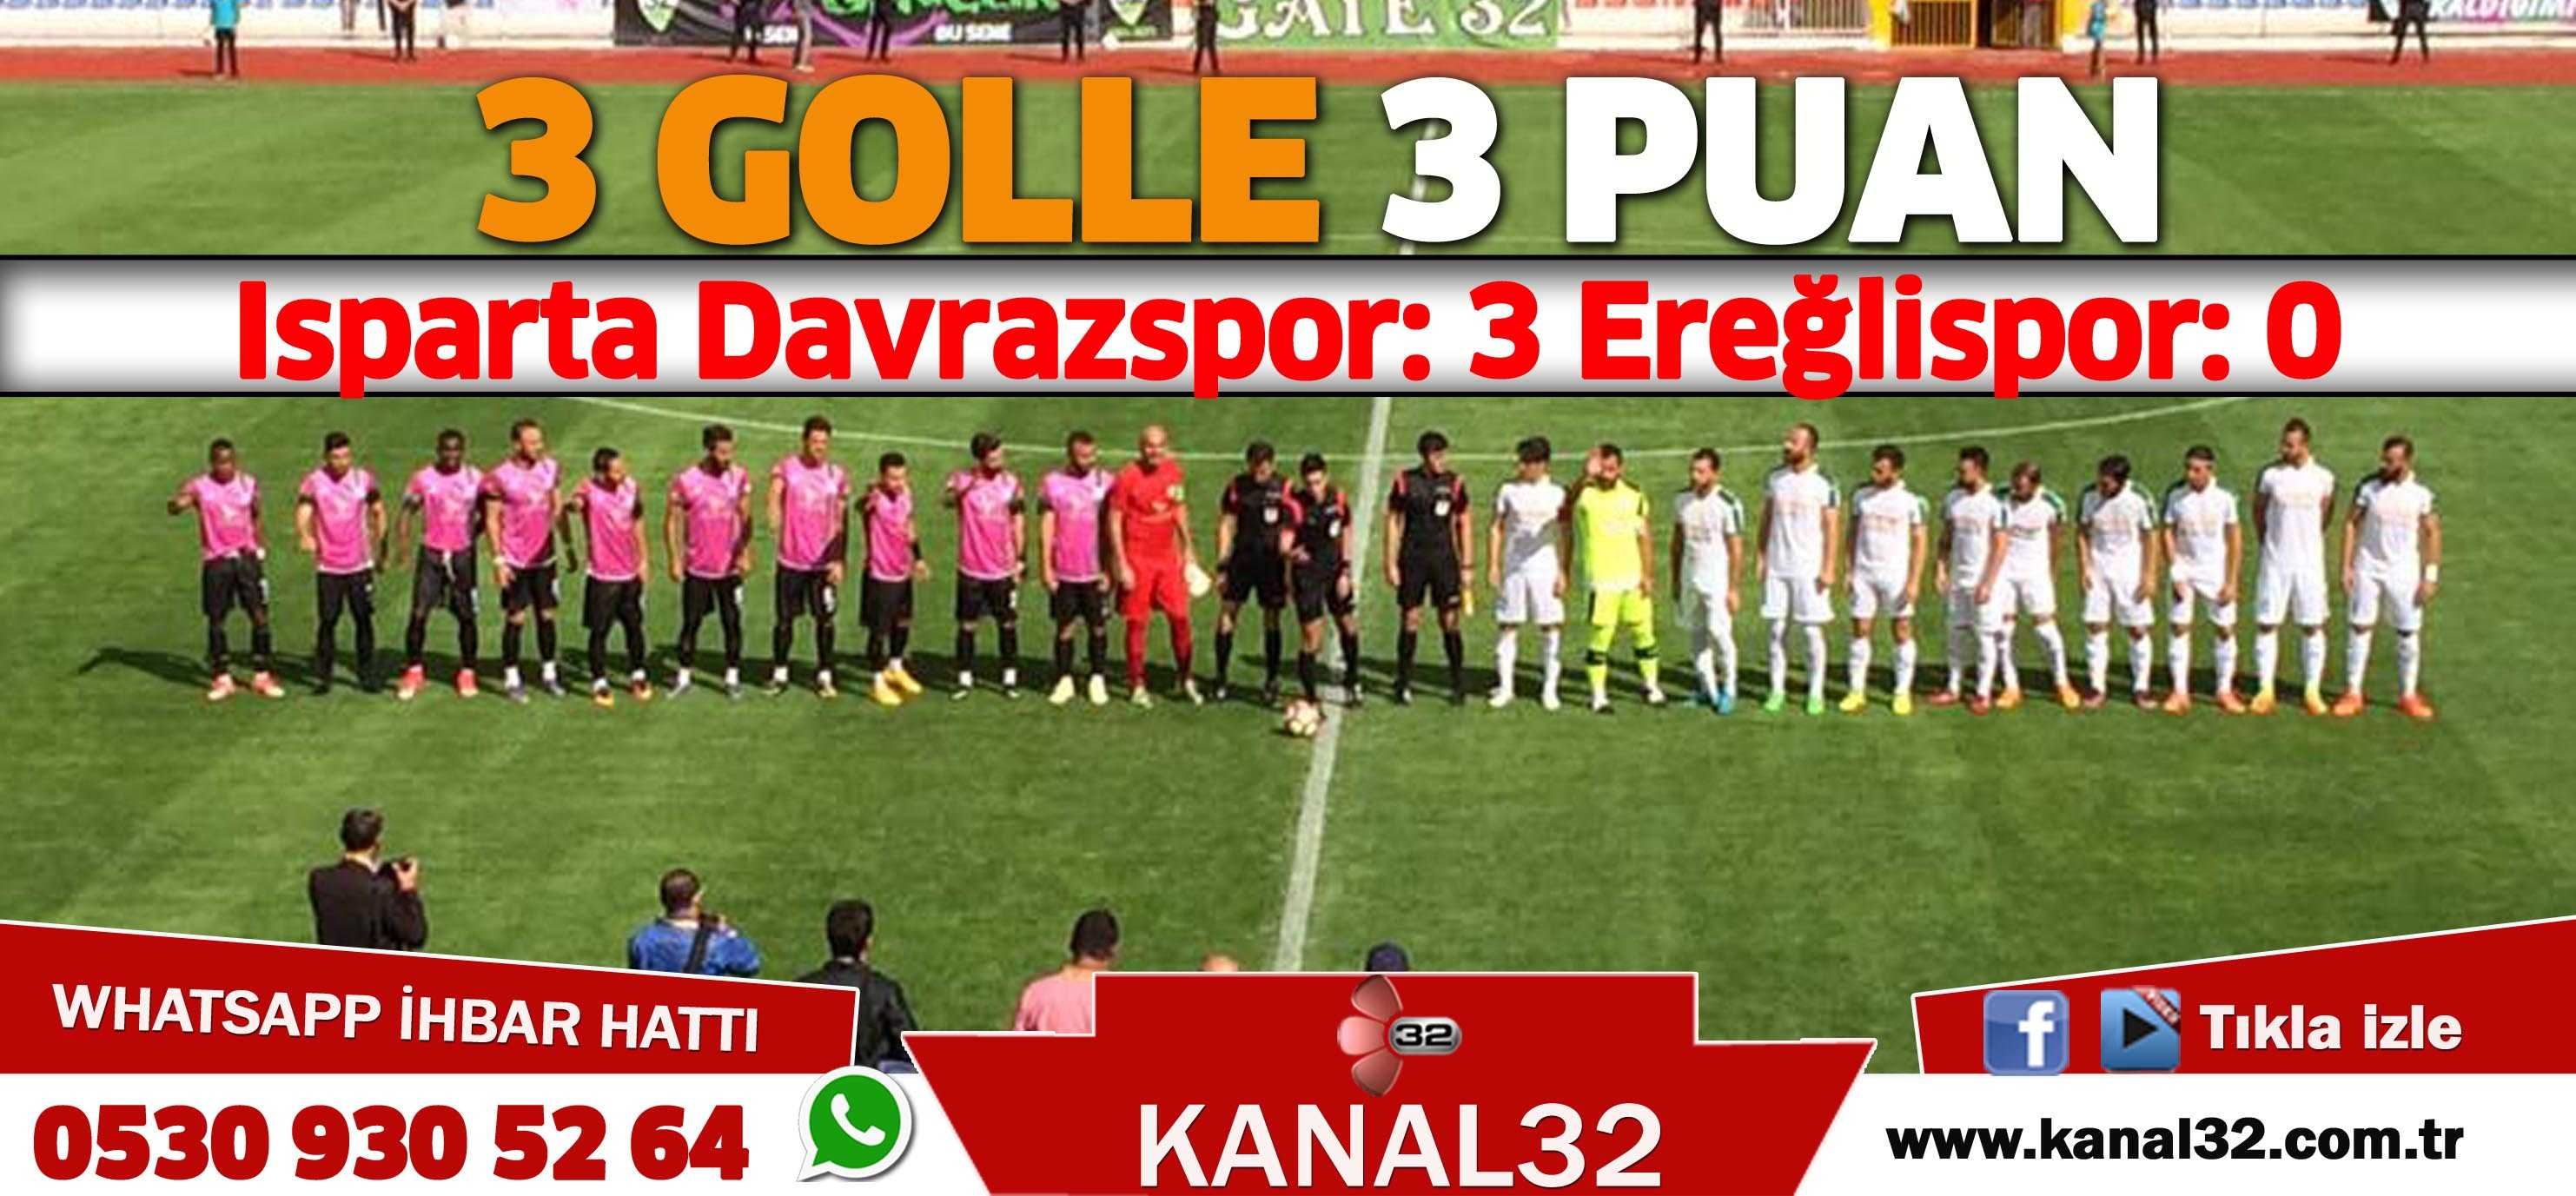 3 GOLLE 3 PUAN